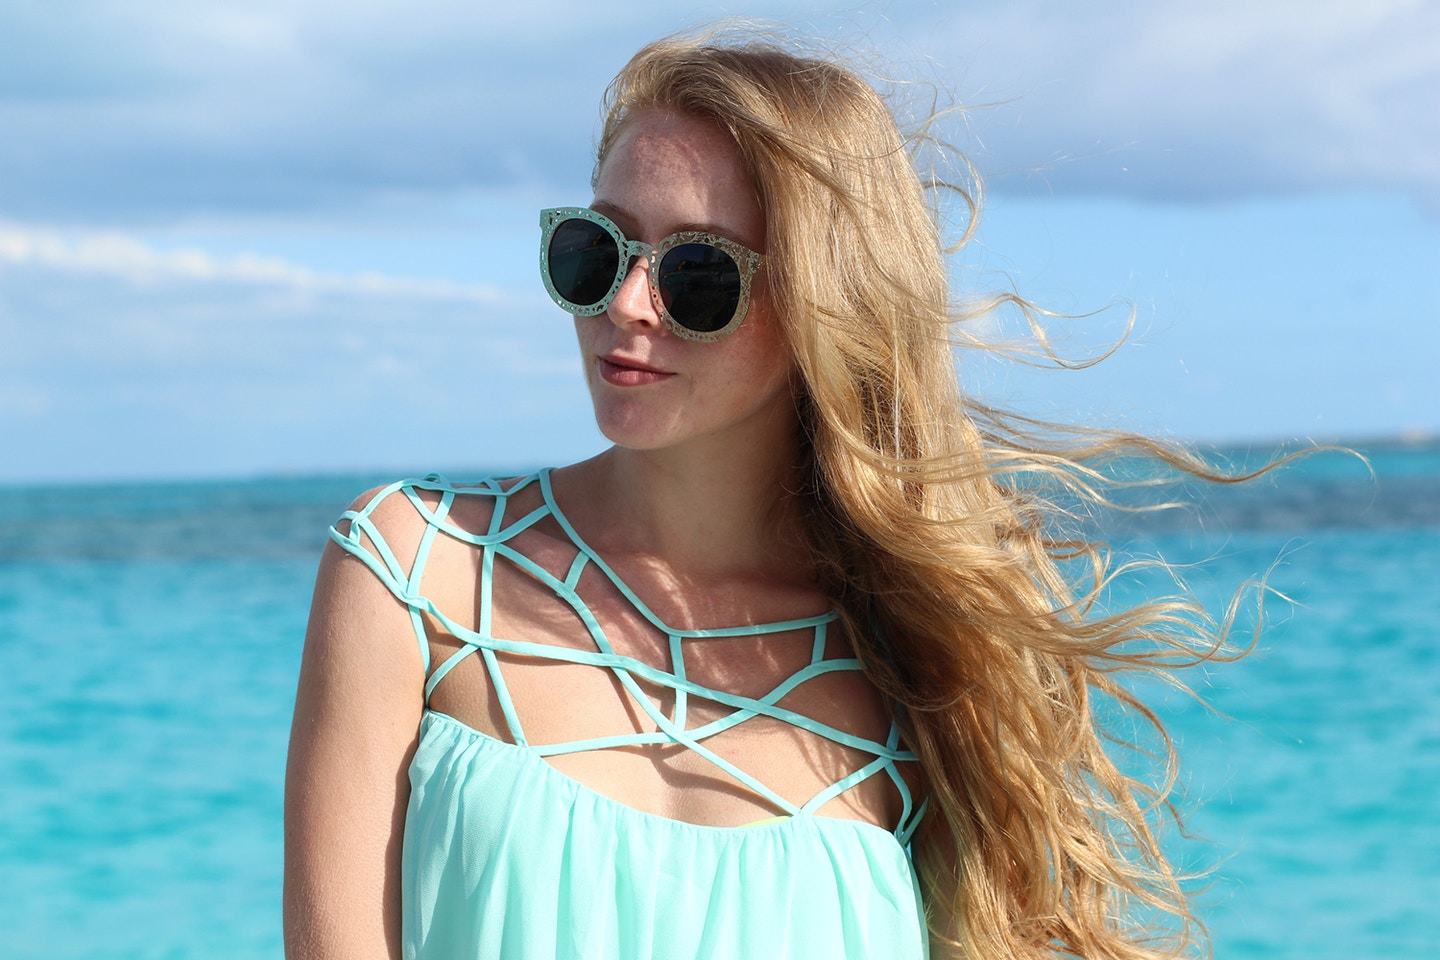 Caribbean Sea blues + Polette eyewear giveaway